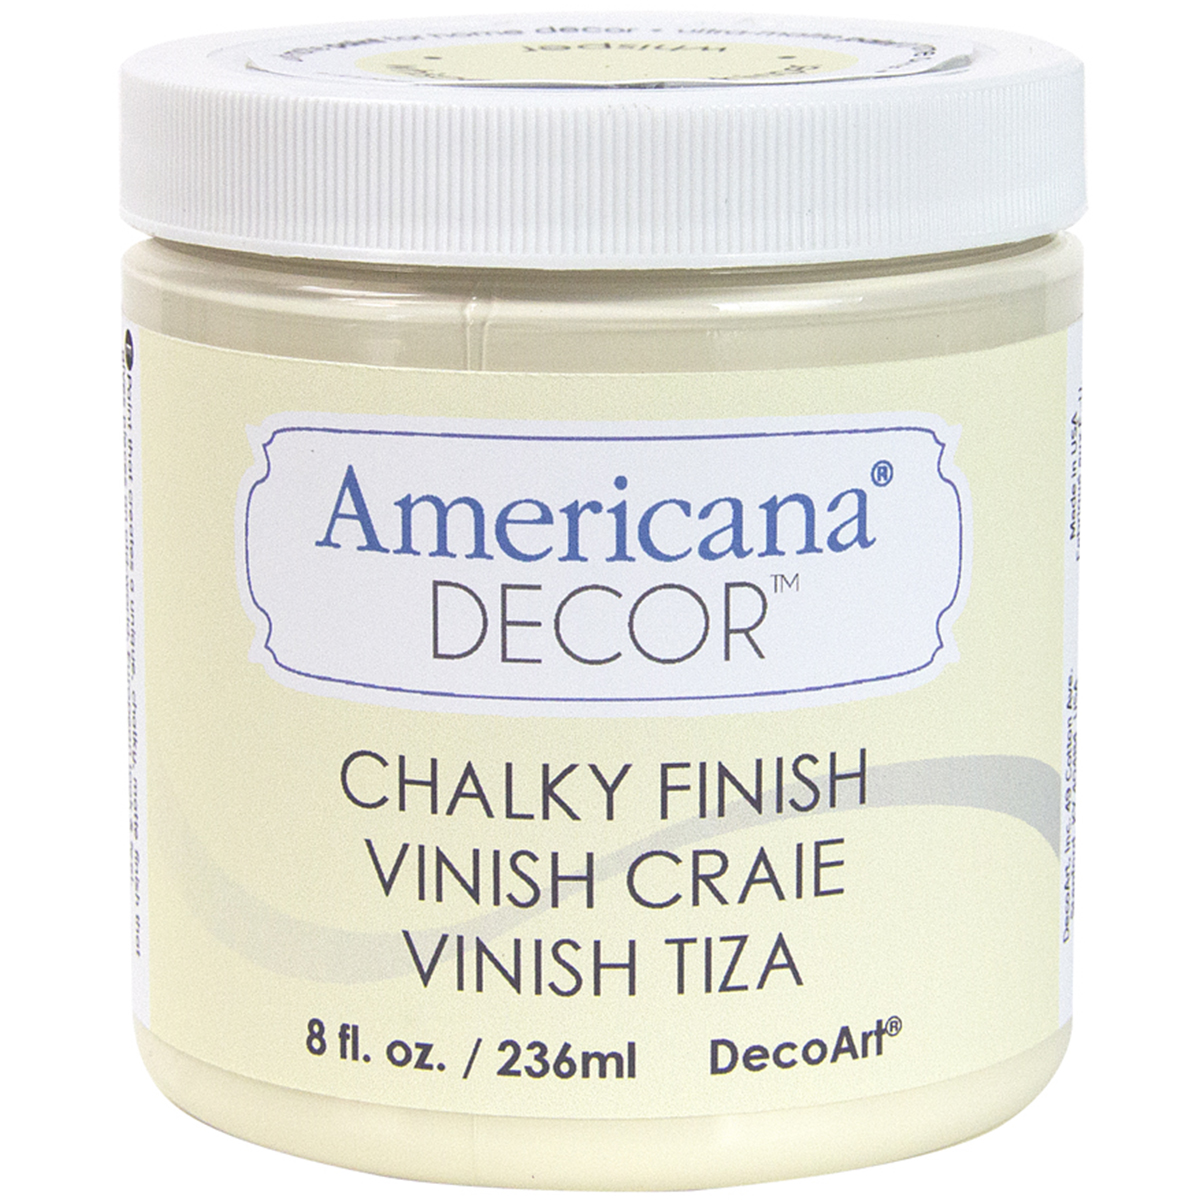 Deco Art Americana Chalky Finish Paint, 8-Ounce, Whisper Multi-Colored